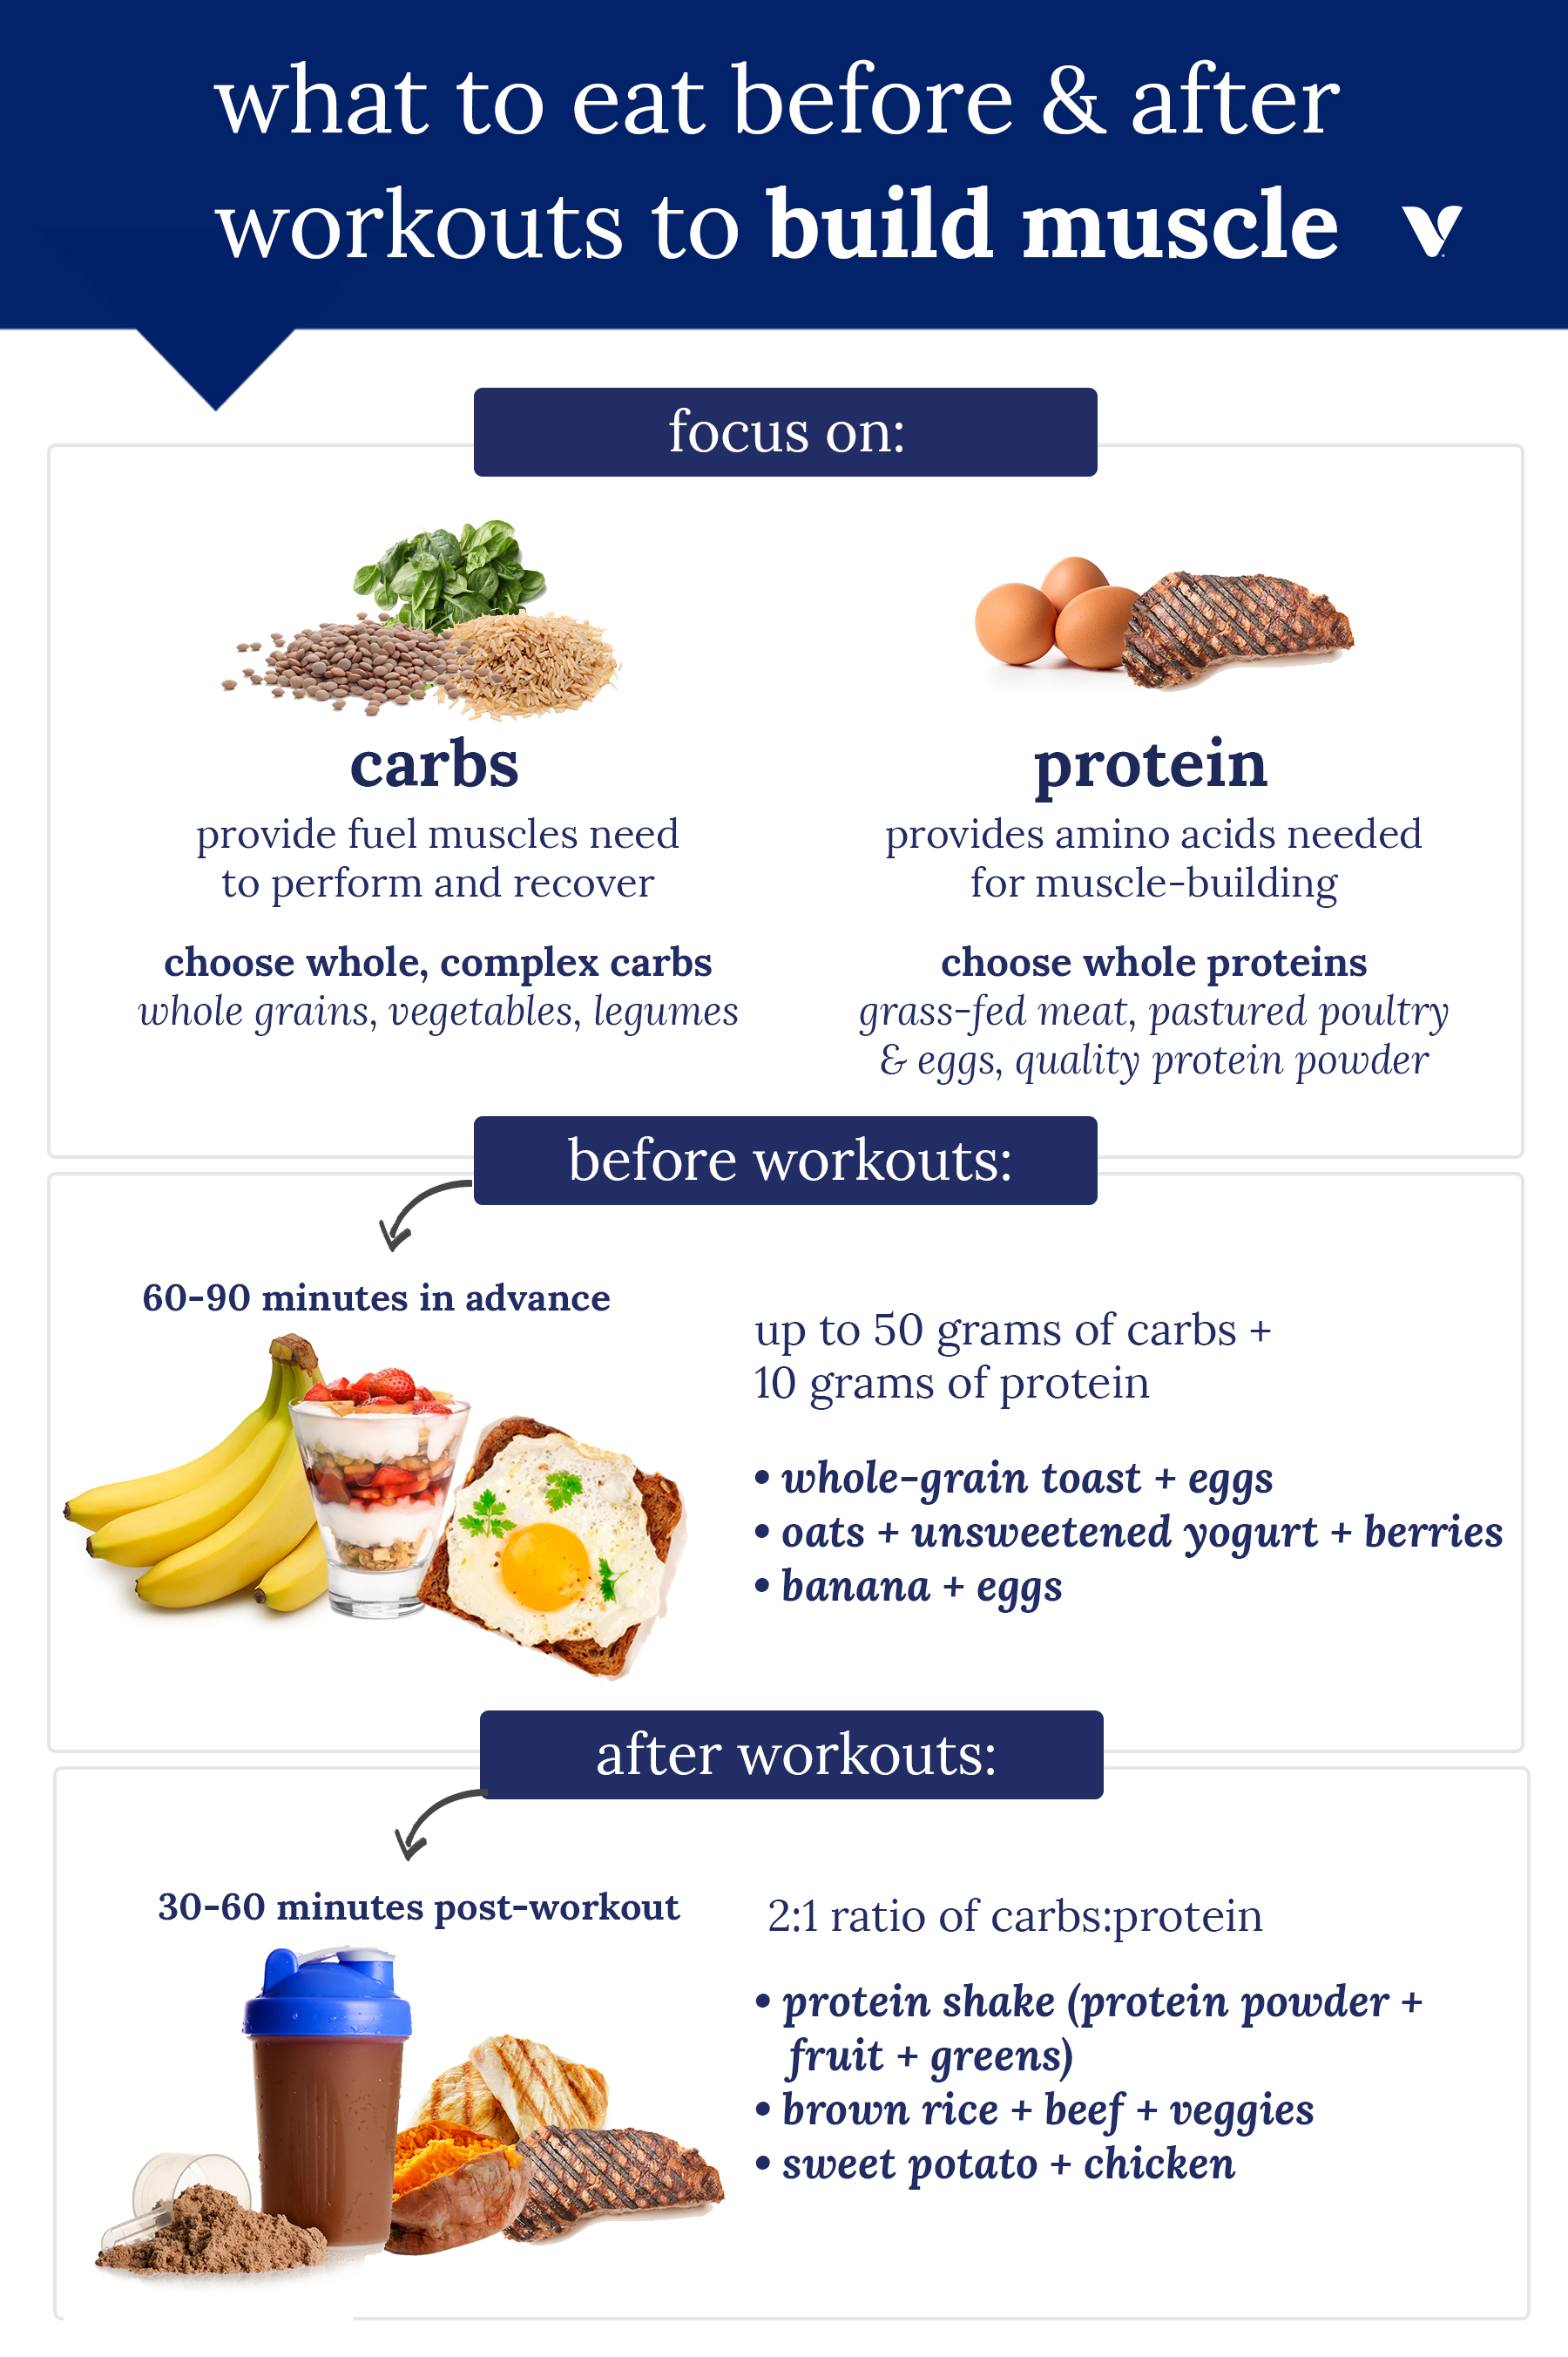 Want To Build Muscle Here S What To Eat Before And After